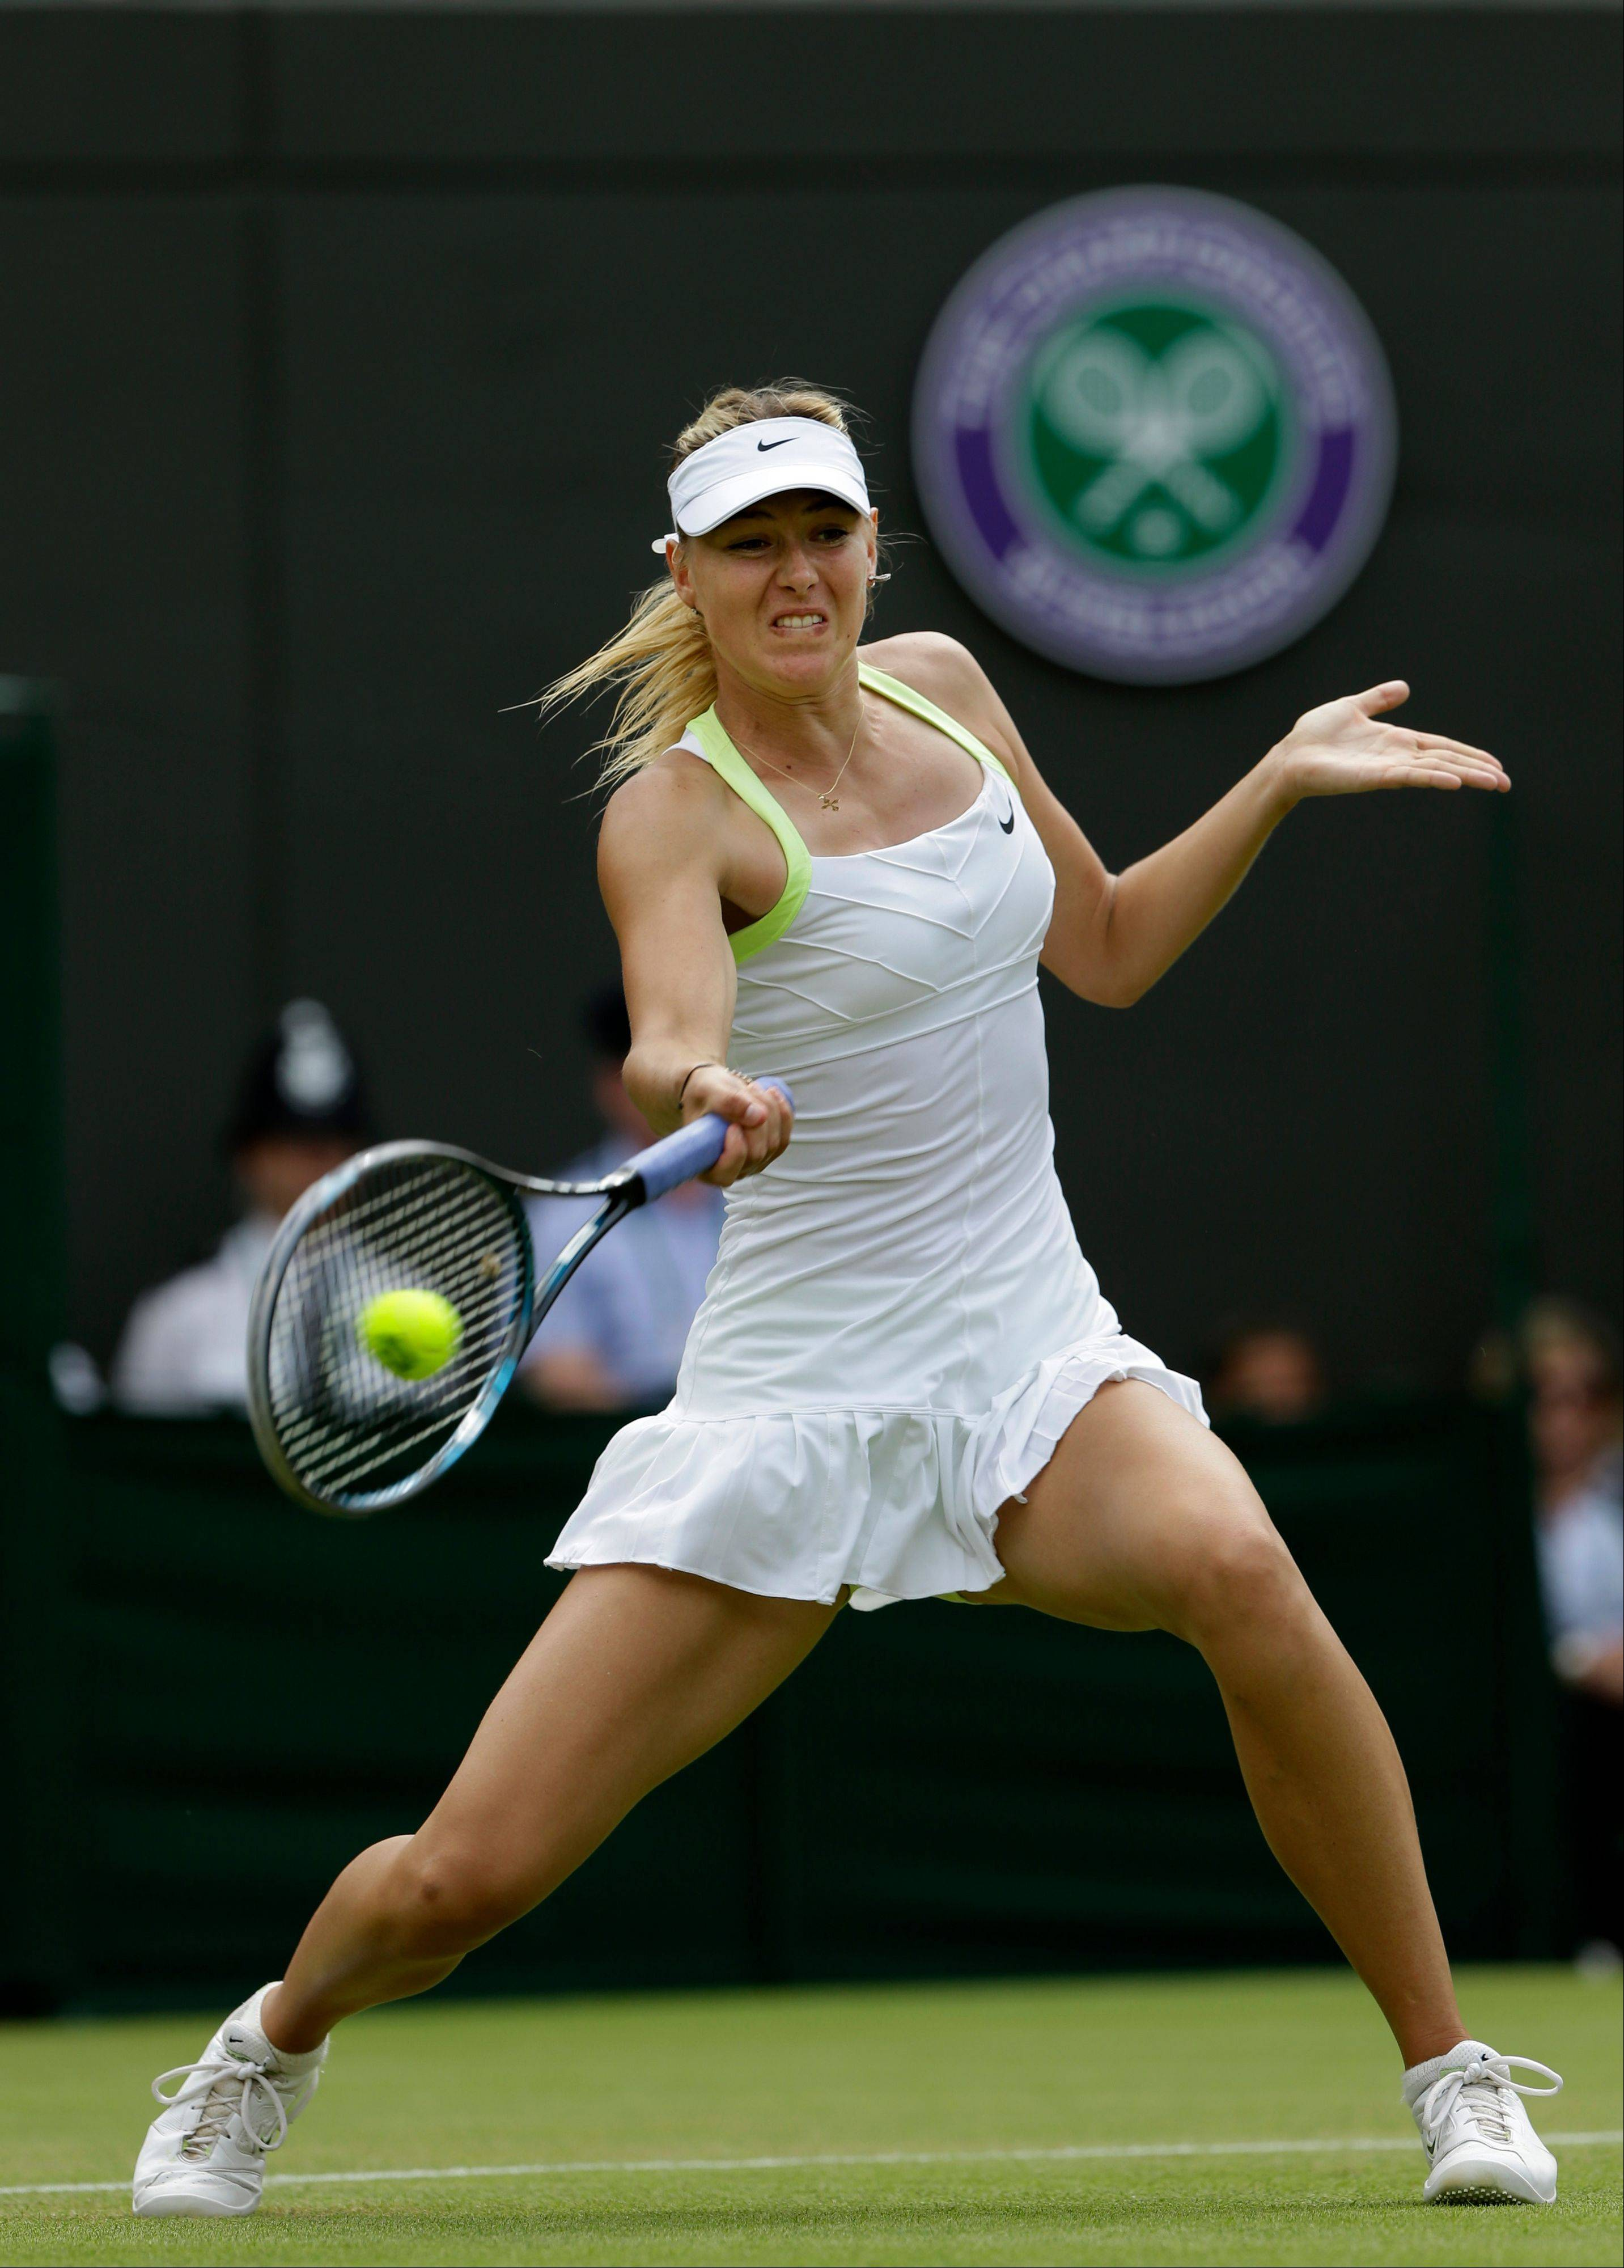 Maria Sharapova of Russia plays a return to Tsvetana Pironkova of Bulgaria during a second round women's singles match at the All England Lawn Tennis Championships at Wimbledon, England, Thursday, June 28, 2012.